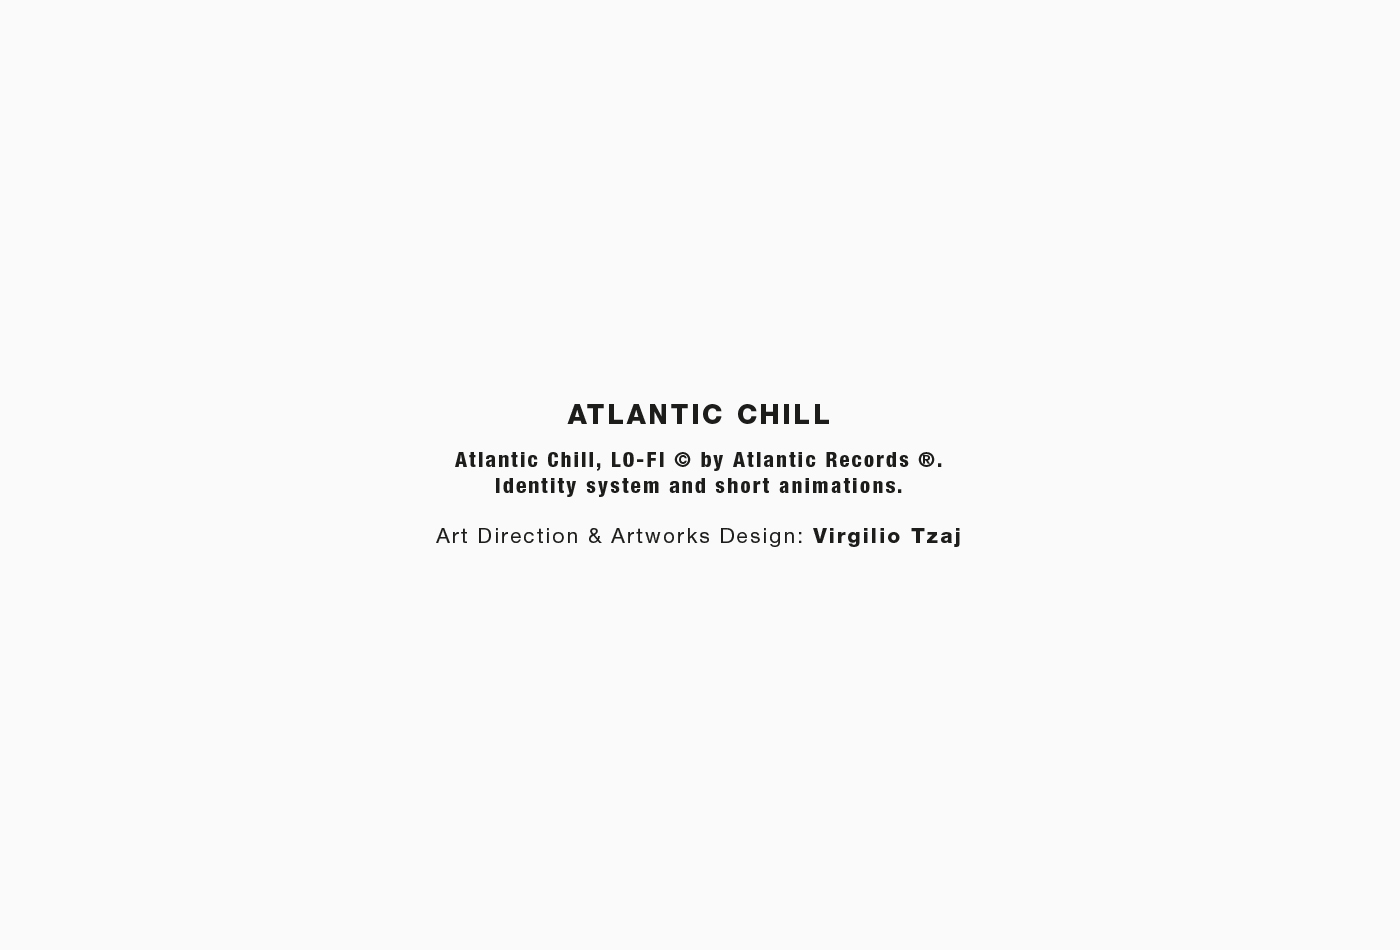 spotify-youtube-instagram-brand-atalntic-chill-atlanticchill-atlantic-records-atlanticrecords-walrus-logo-music-youtube-lofi-lo-fi-japanese-obi-branding-vacaliebres-drake